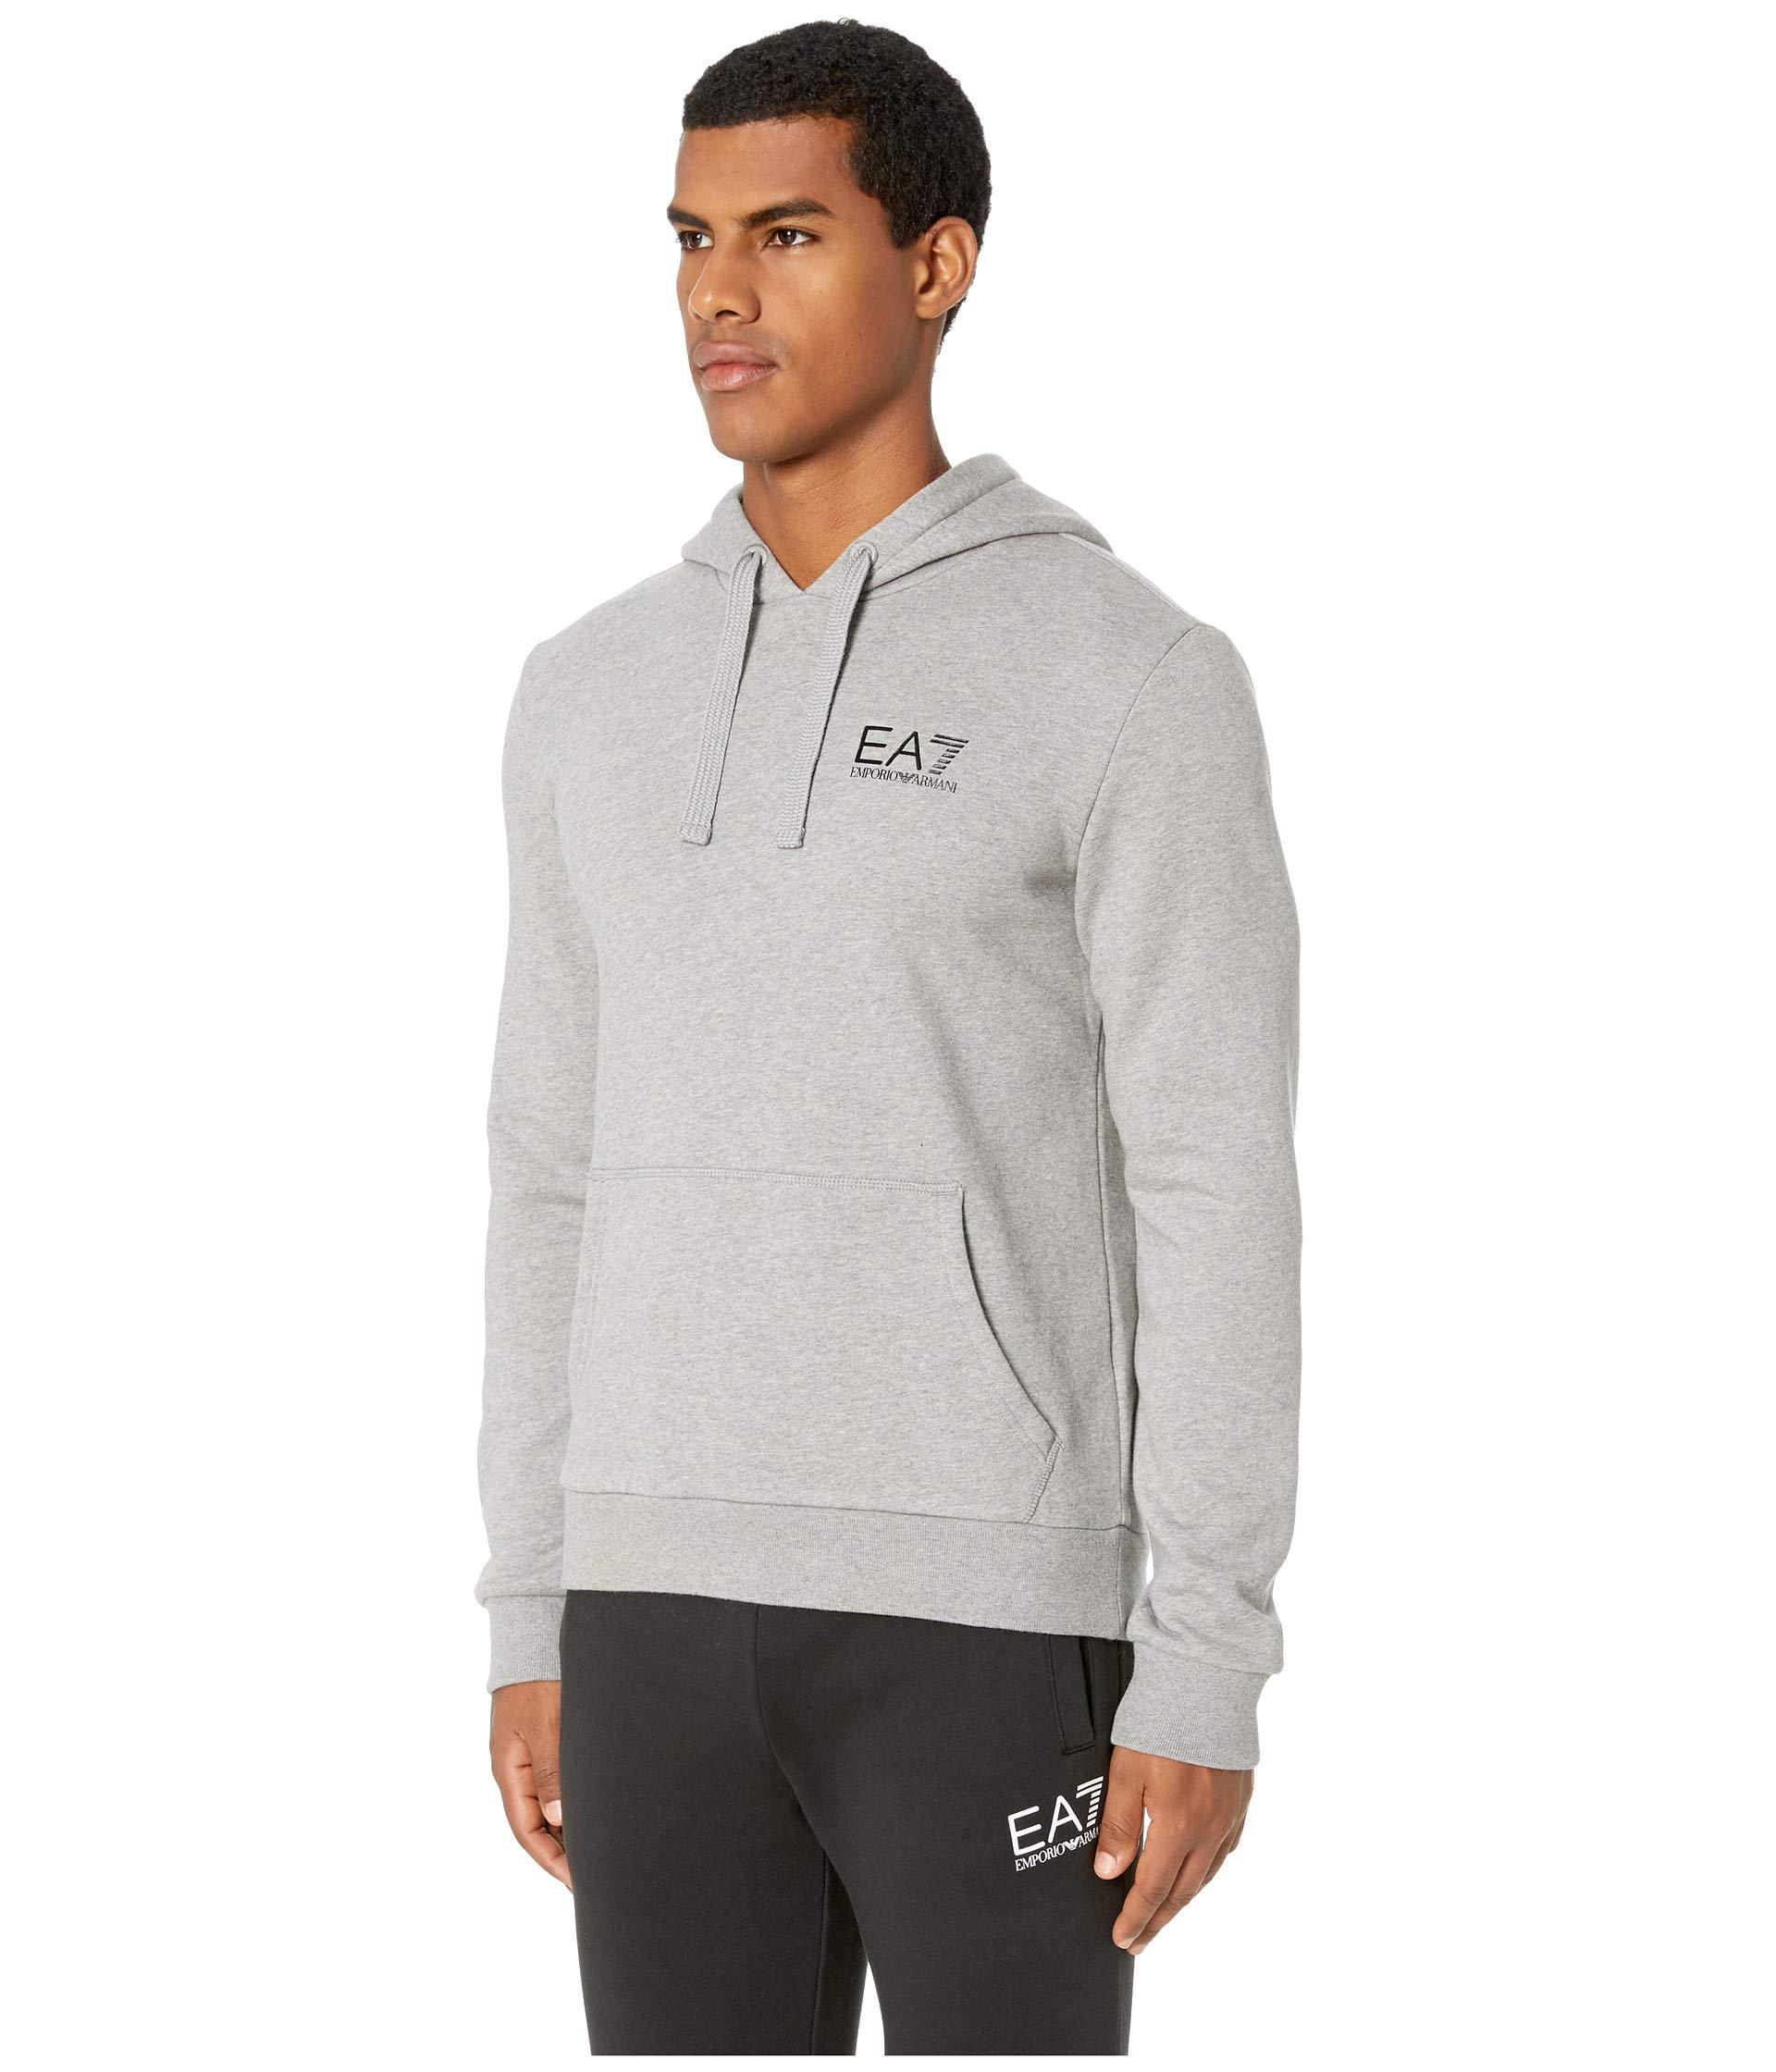 3f80234d10b Lyst - Emporio Armani Ea7 - Training Pullover Fleece Hoodie (medium Grey  Melange) Men s Sweatshirt in Gray for Men